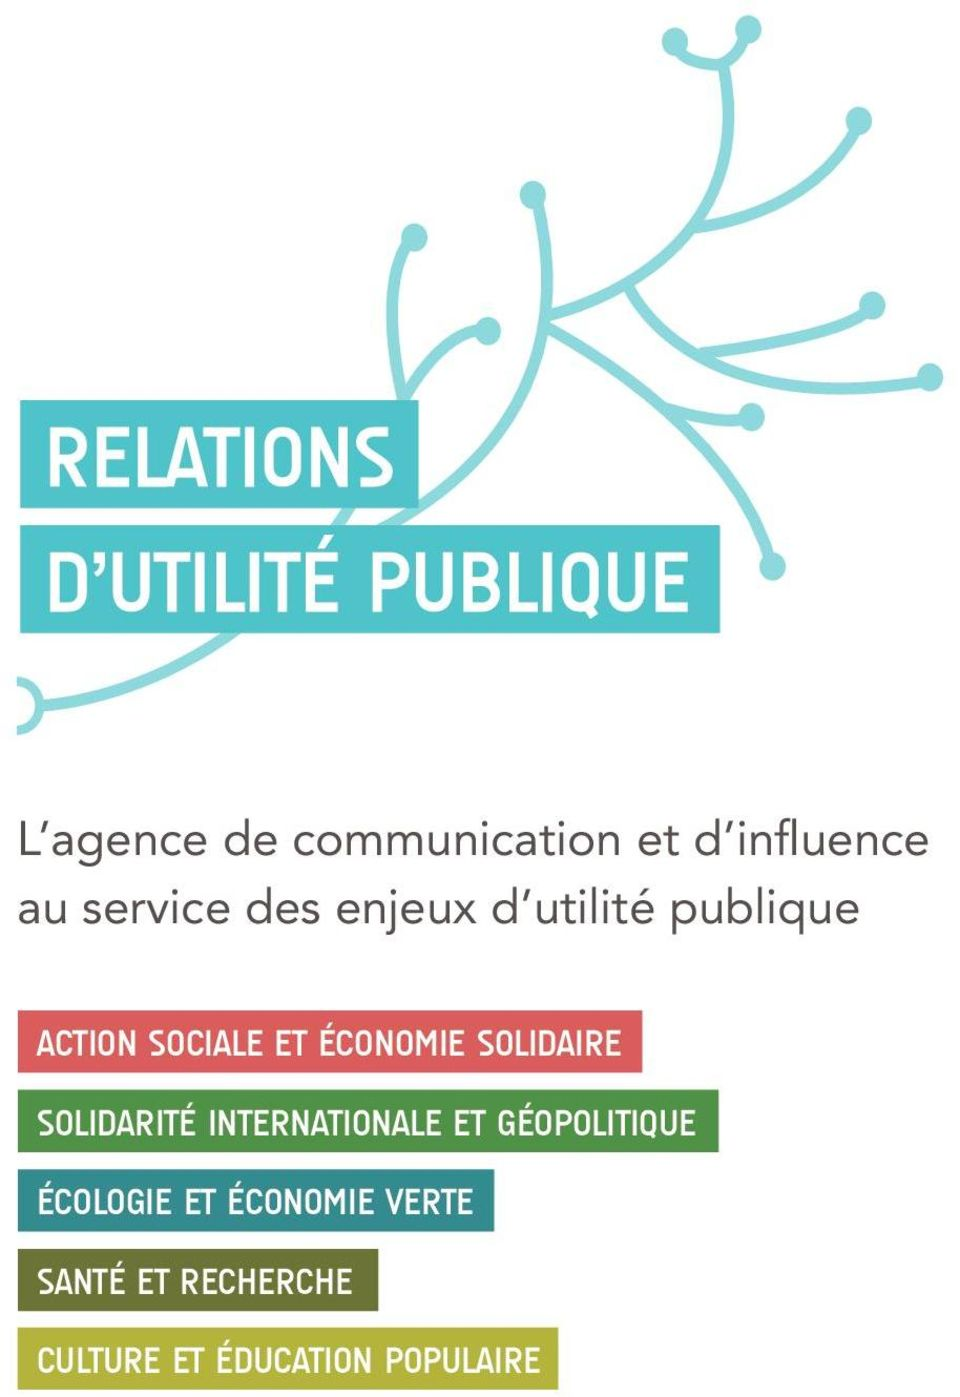 solidaire Solidarité internationale et géopolitique